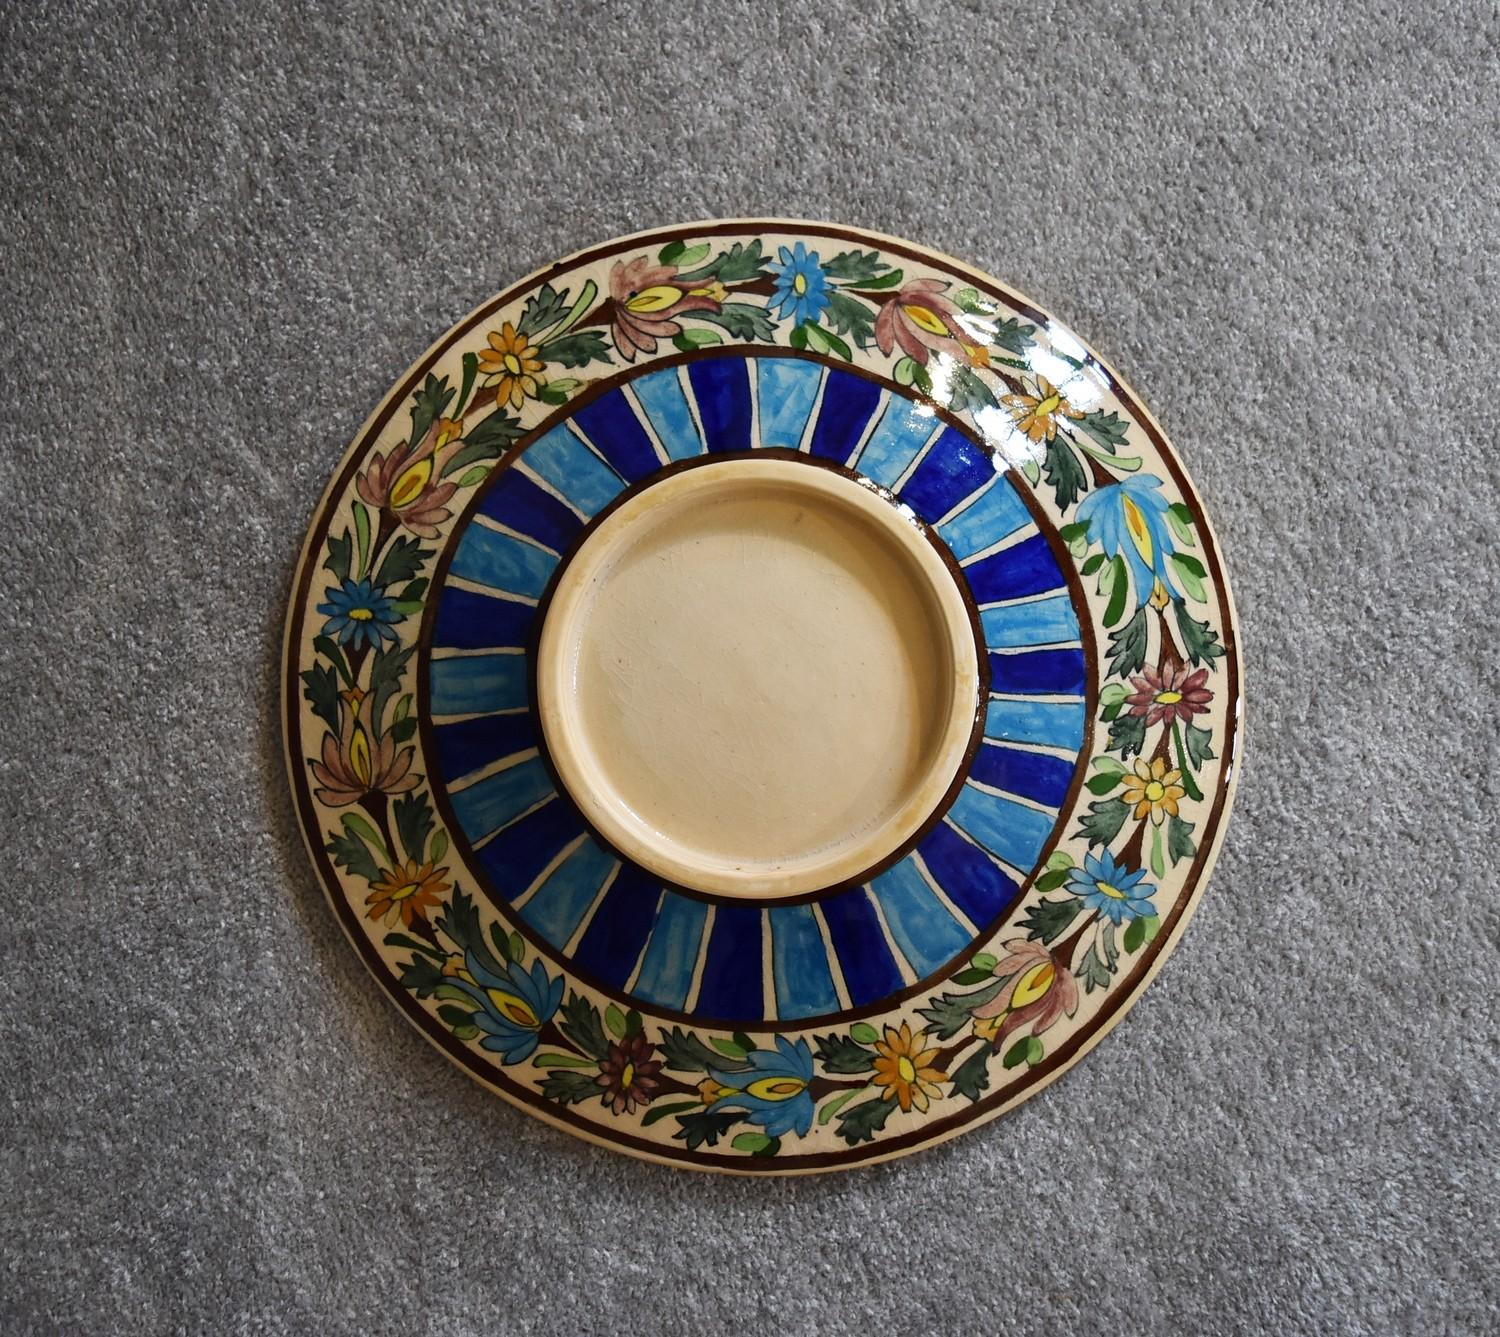 Lot 26 - A large Persian ceramic shallow bowl with allover floral pattern. Dia.42cm